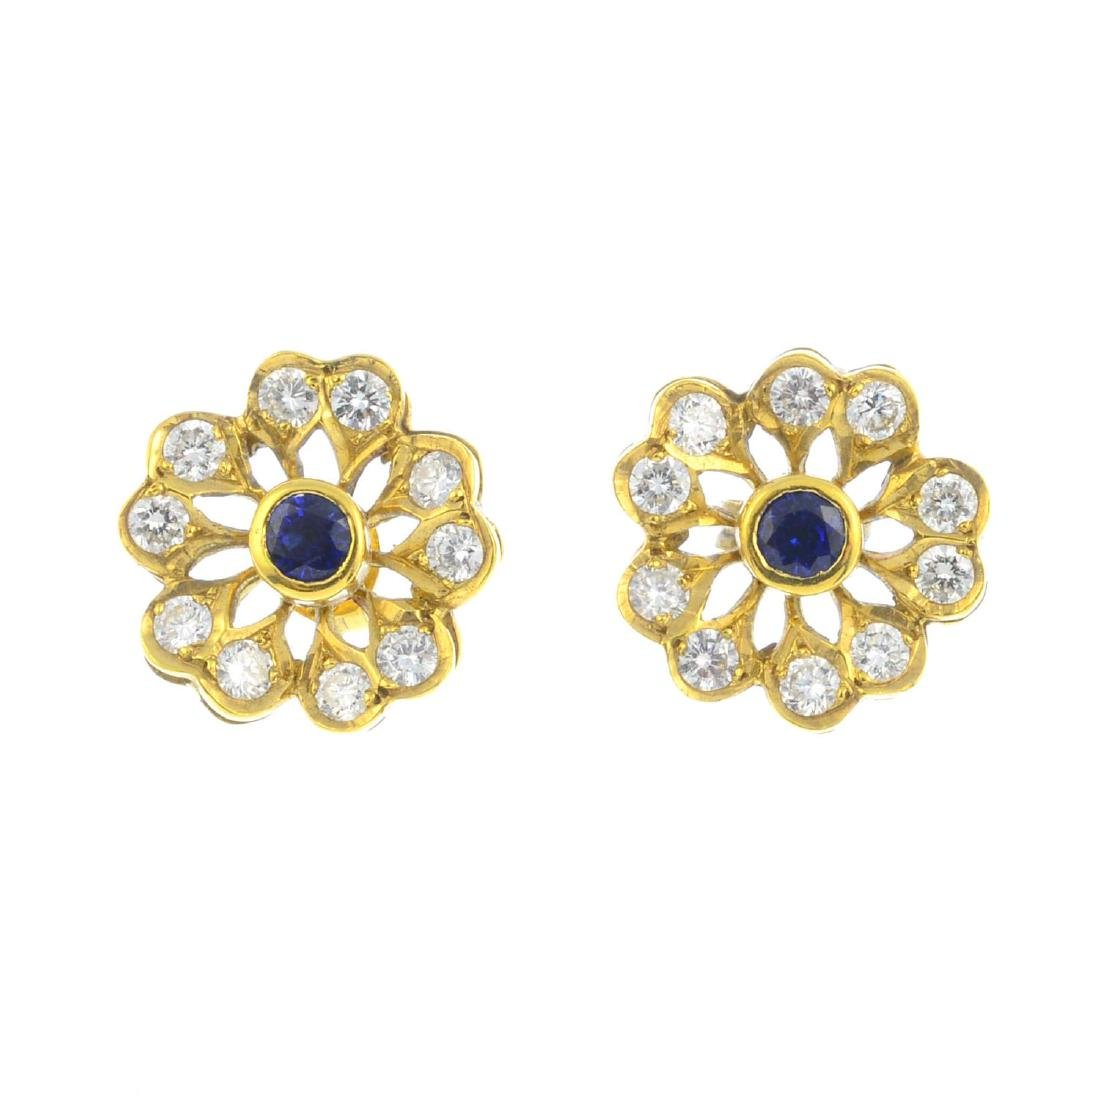 A pair of 18ct gold sapphire and diamond floral